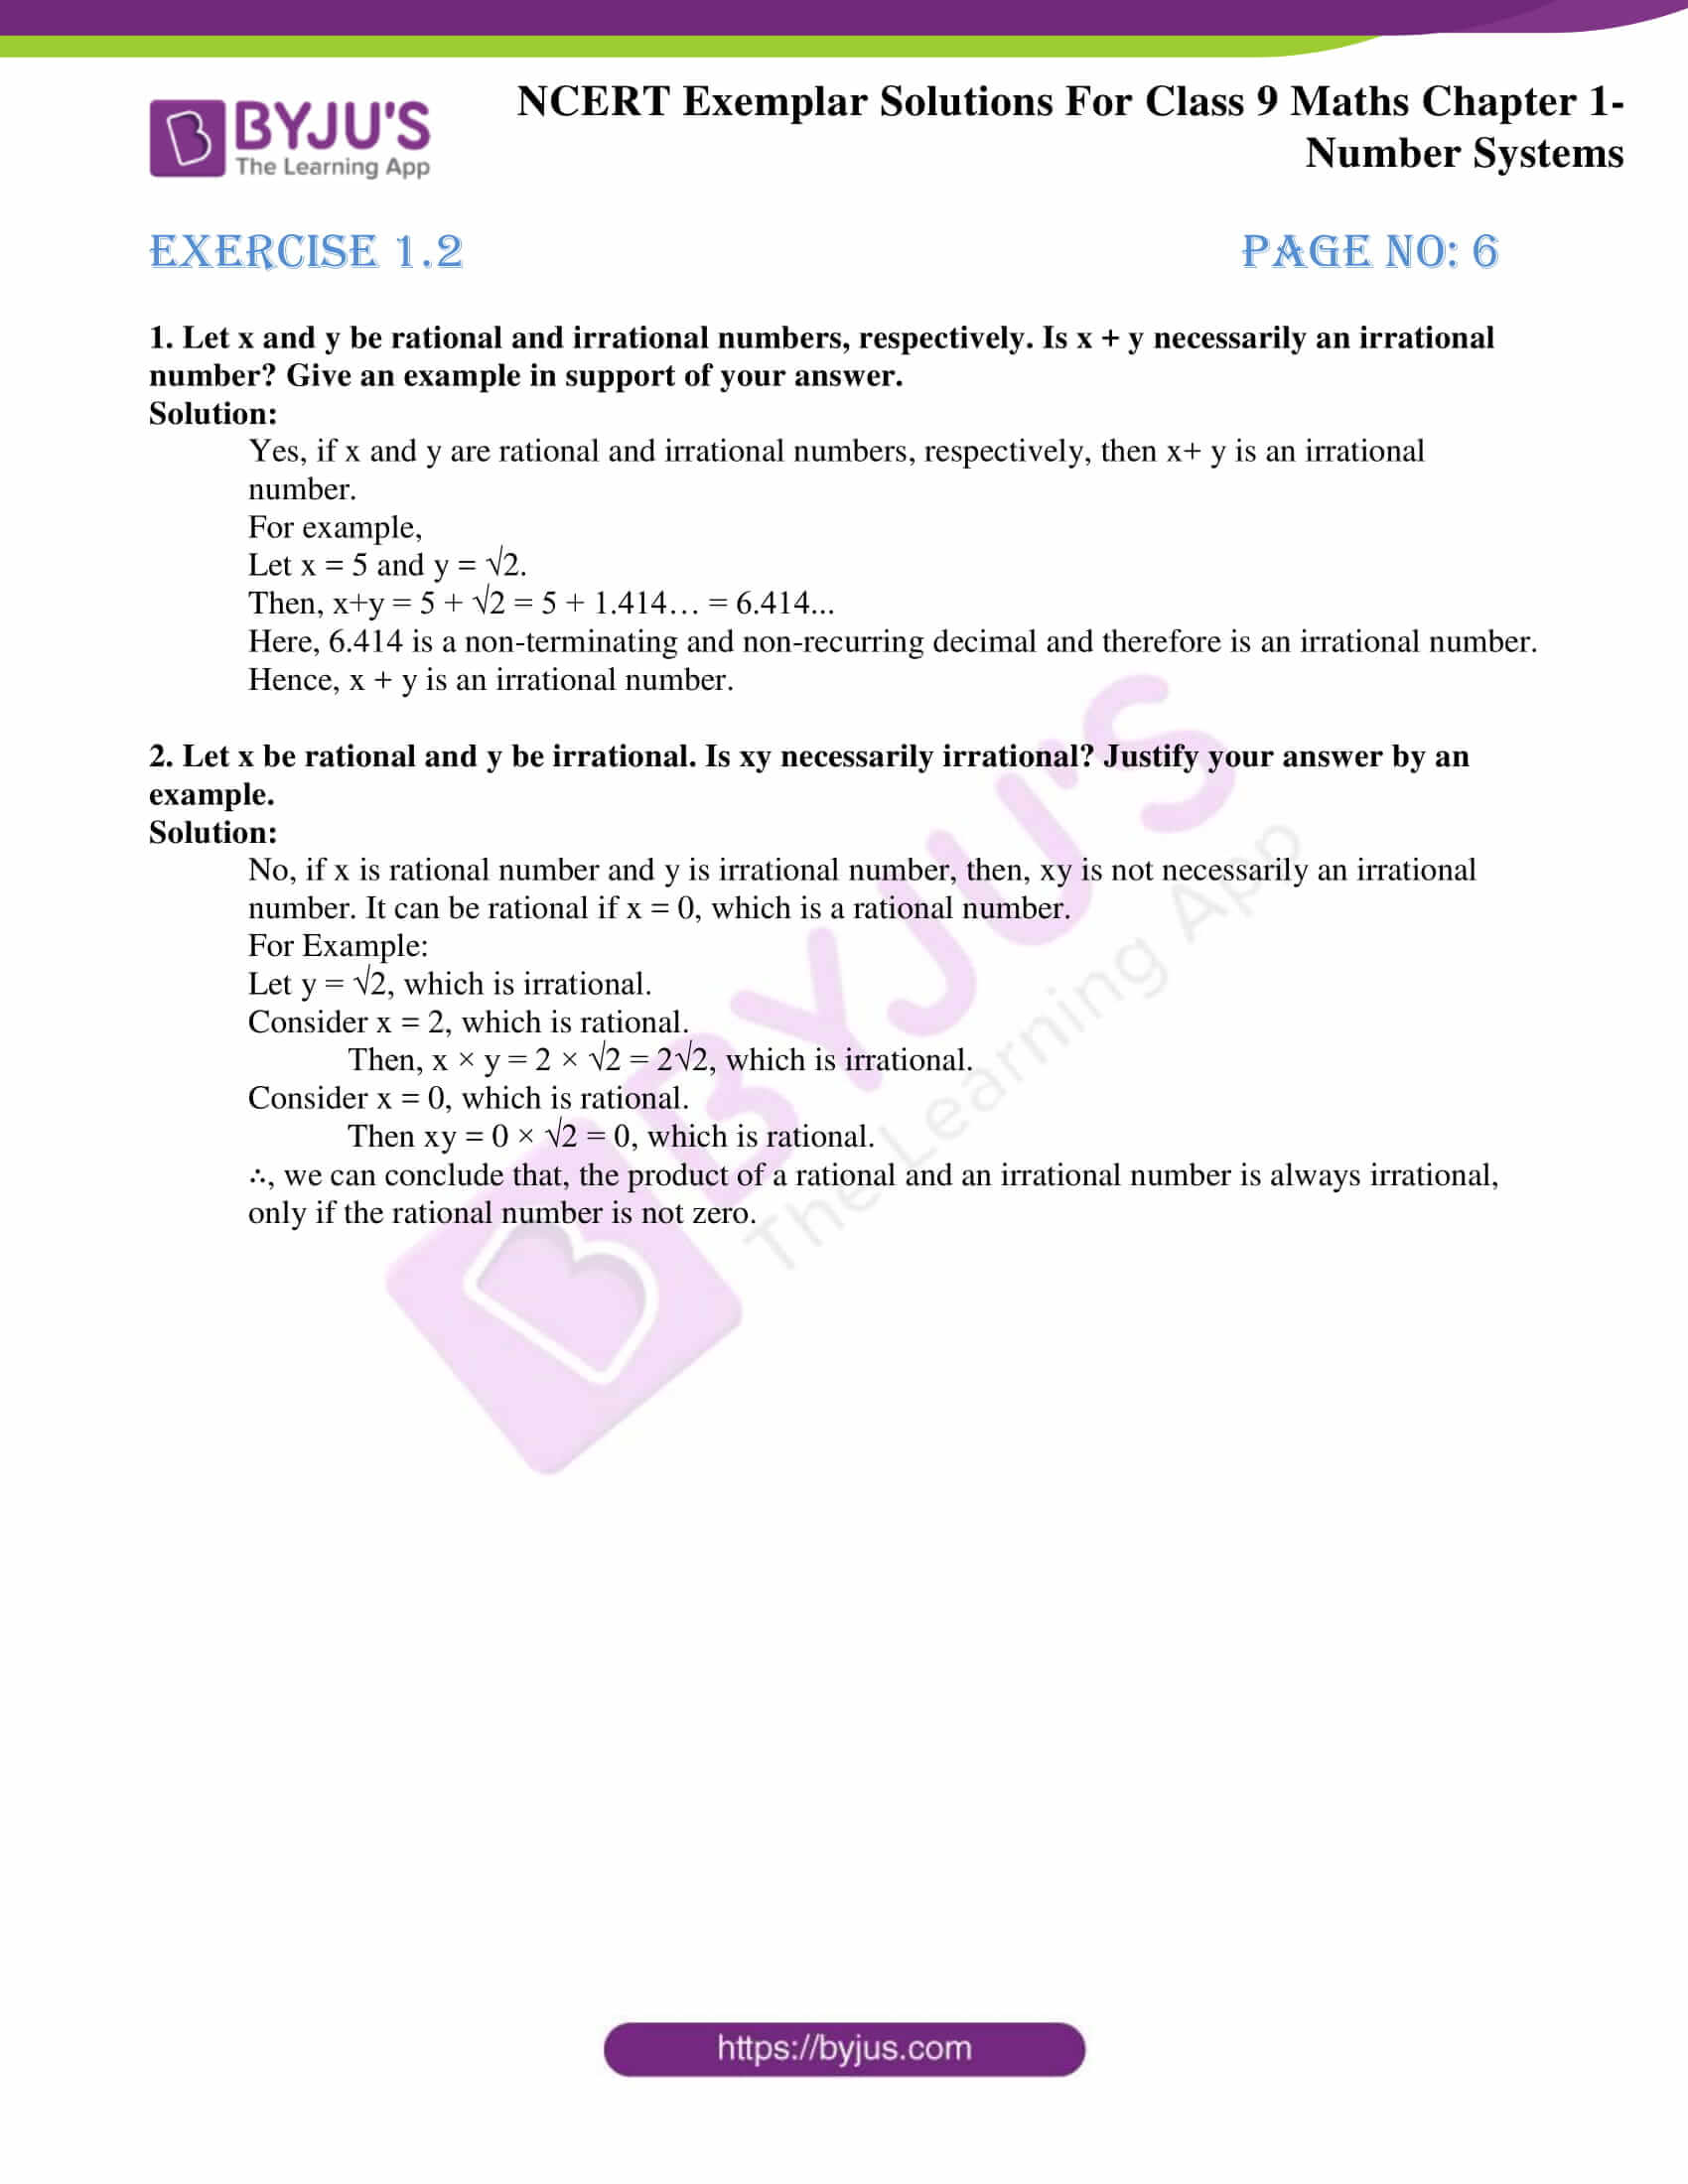 NCERT Exemplar Solutions for Class 9 Maths Chapter 1 05